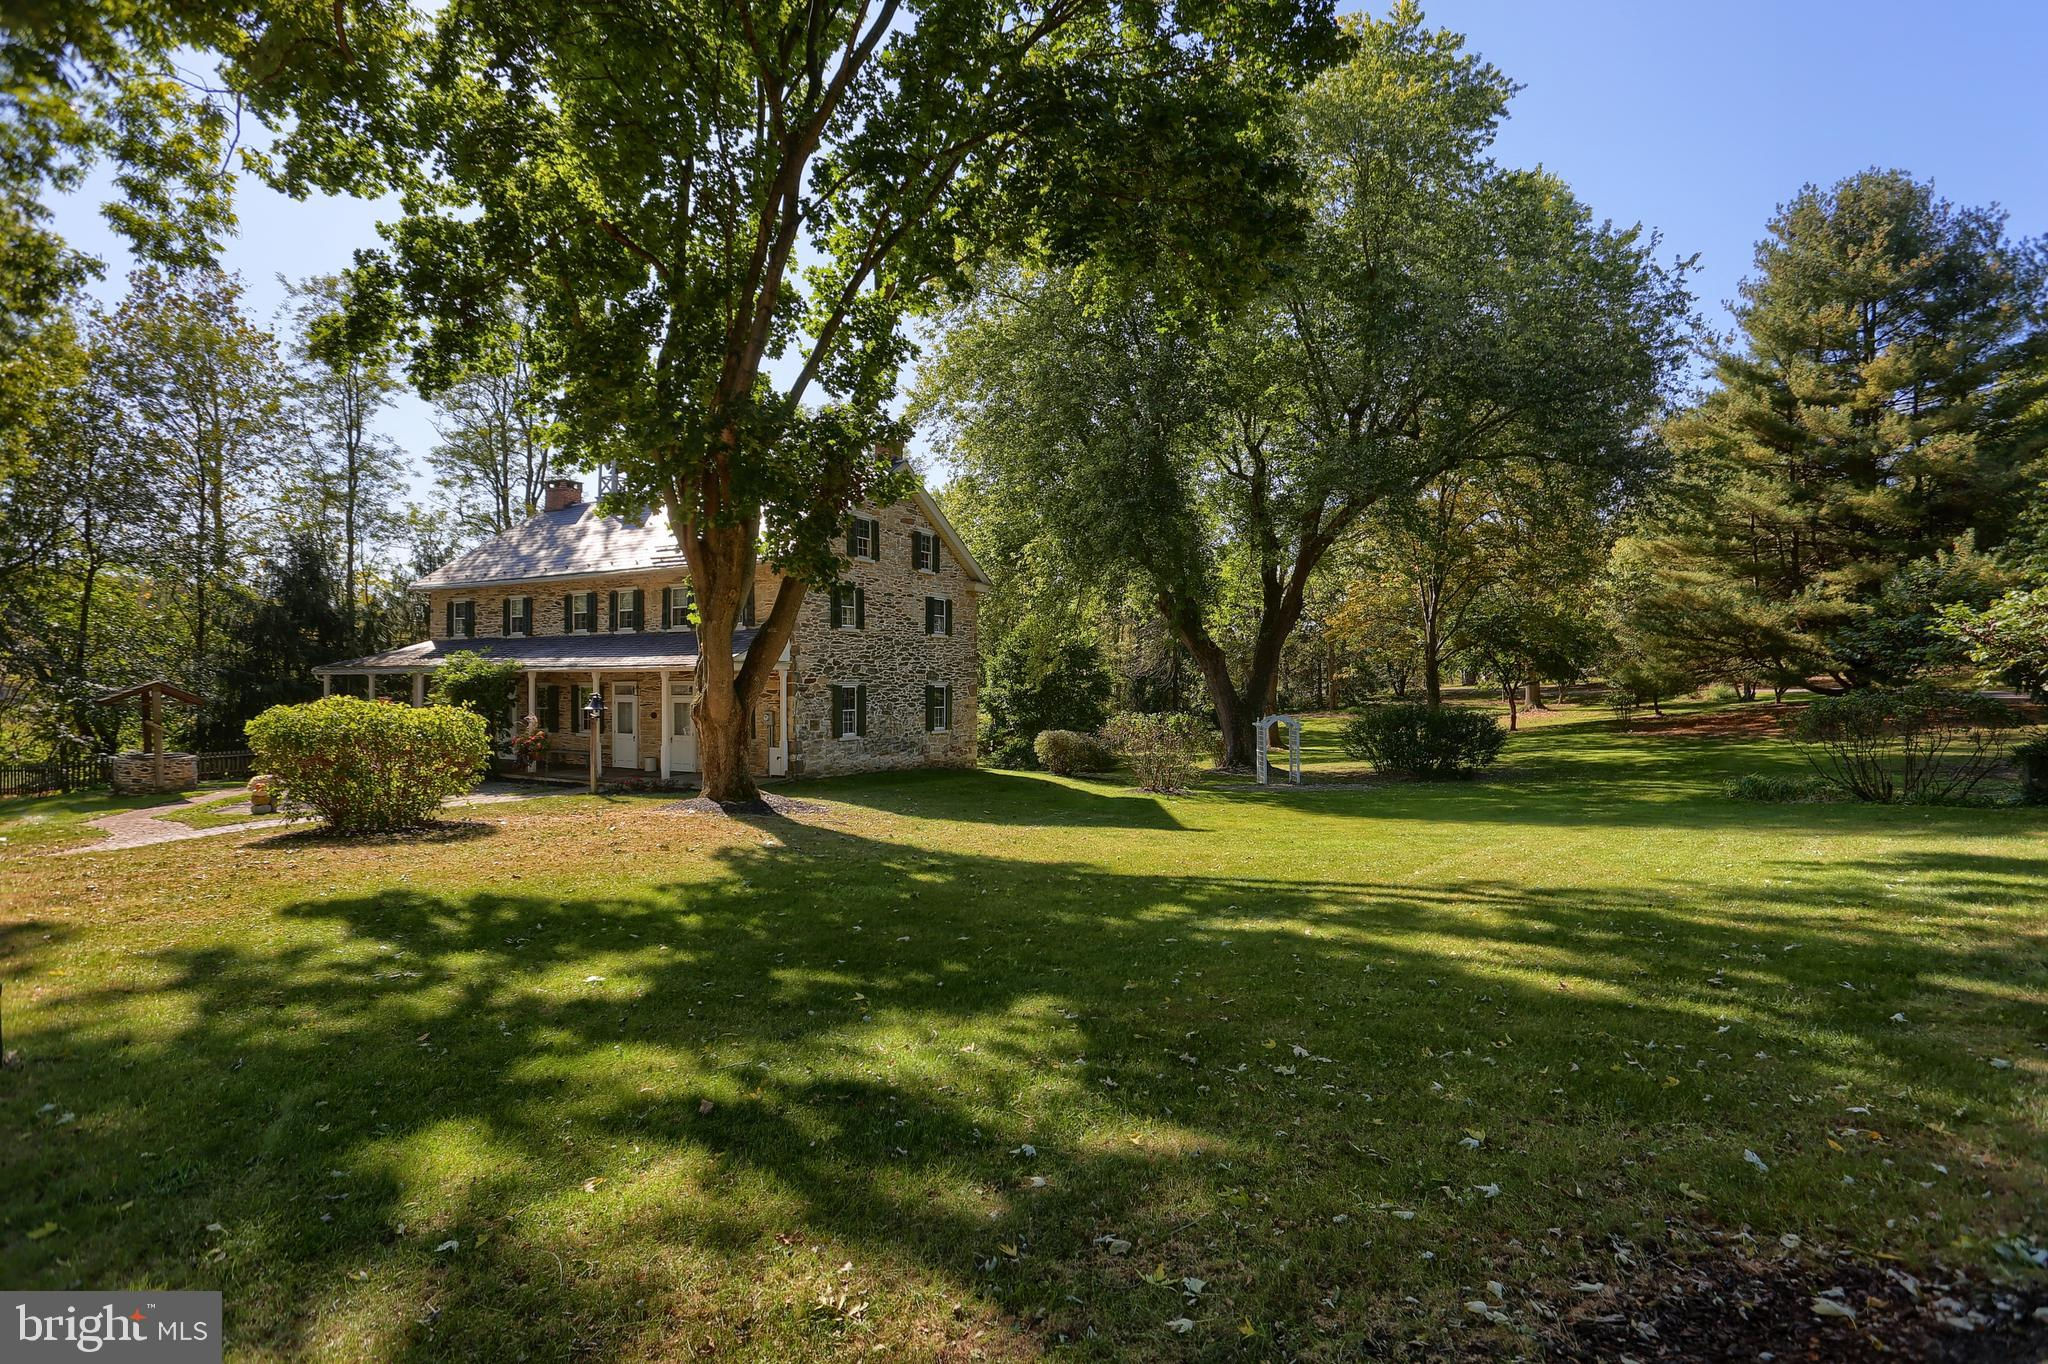 799 RAWLINSVILLE ROAD, WILLOW STREET, PA 17584